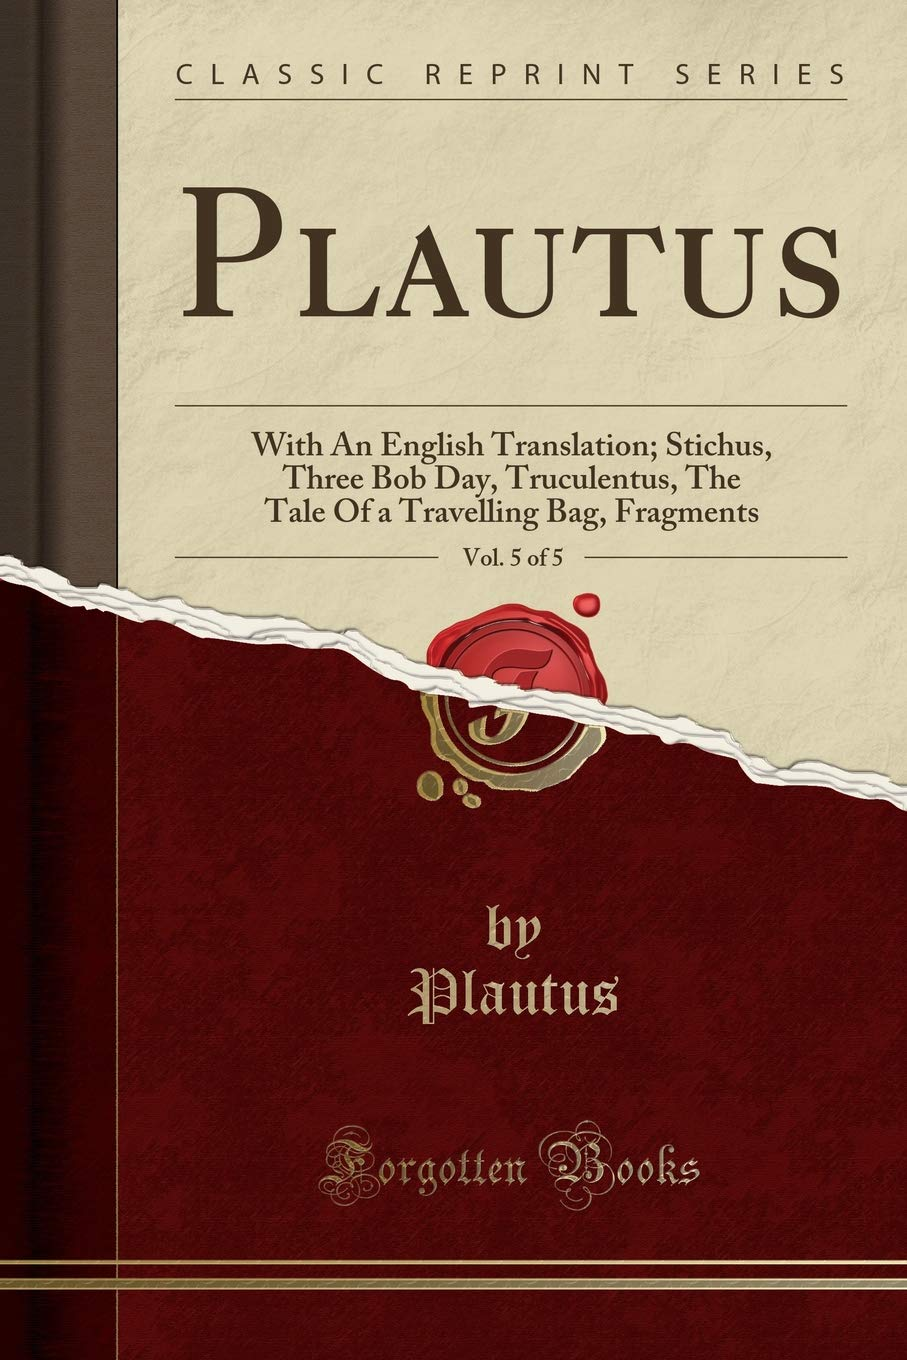 Plautus, Vol. 5 of 5: With an English Translation; Stichus, Three Bob Day, Truculentus, the Tale of a Travelling Bag, Fragments (Classic Reprint) (Latin Edition) pdf epub